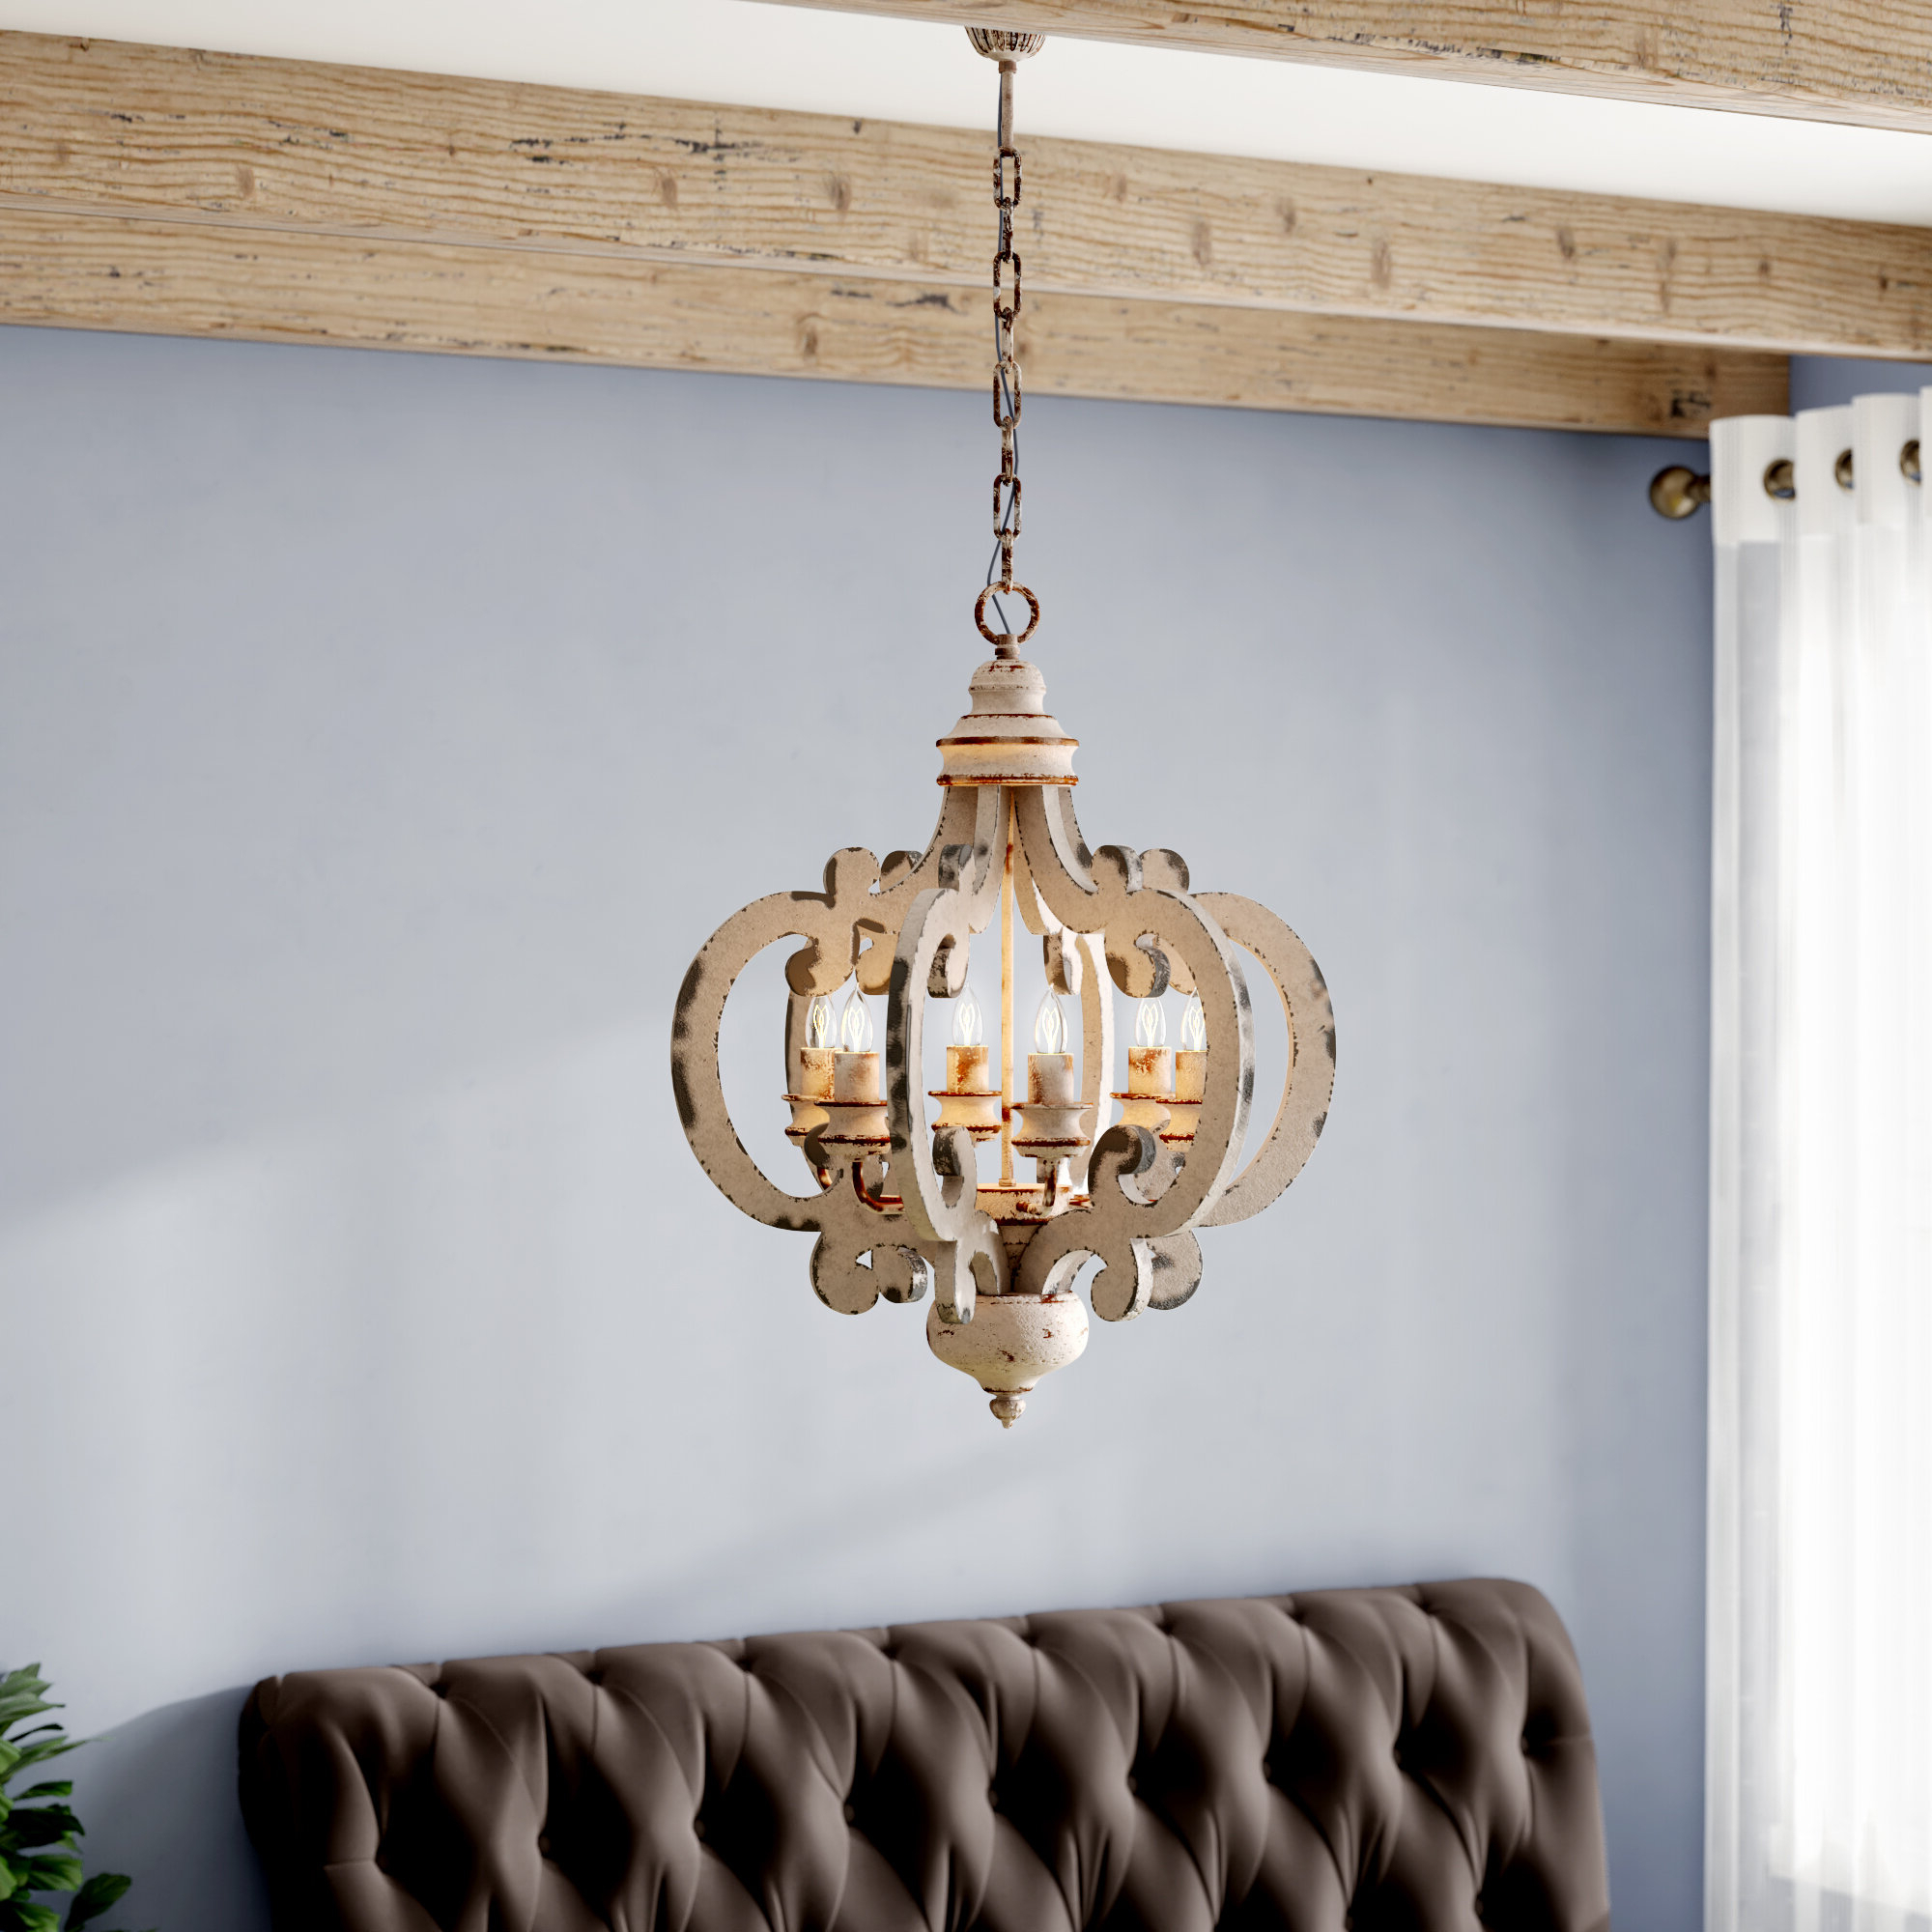 2020 Lark Manor Lynn 6 Light Geometric Chandelier Intended For Lynn 6 Light Geometric Chandeliers (View 3 of 20)